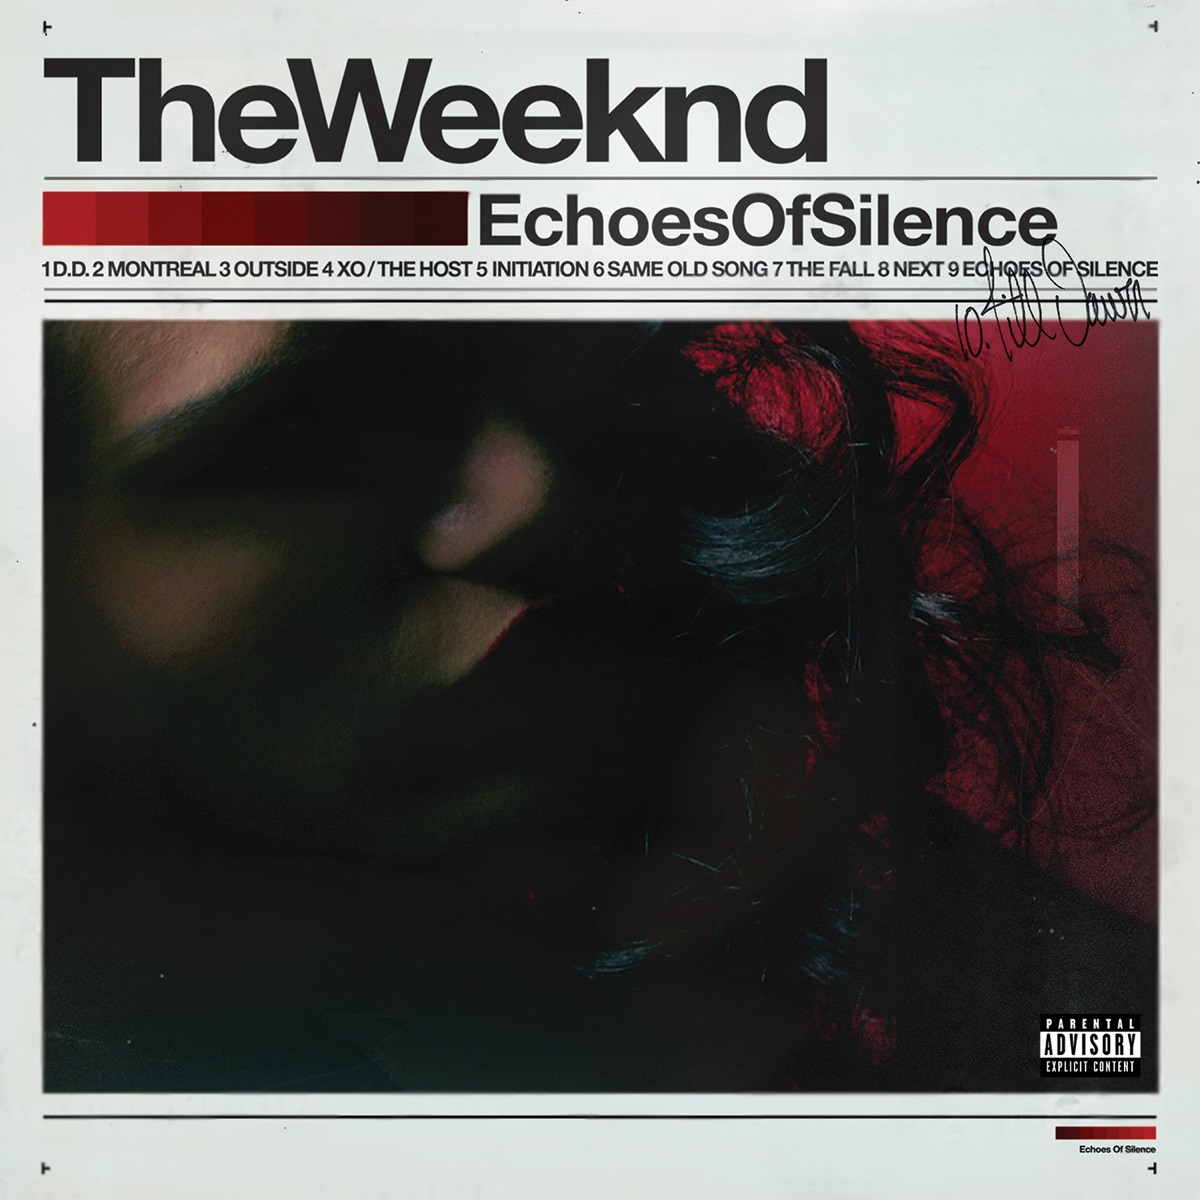 Echoes of Silence The Weeknd CD cover